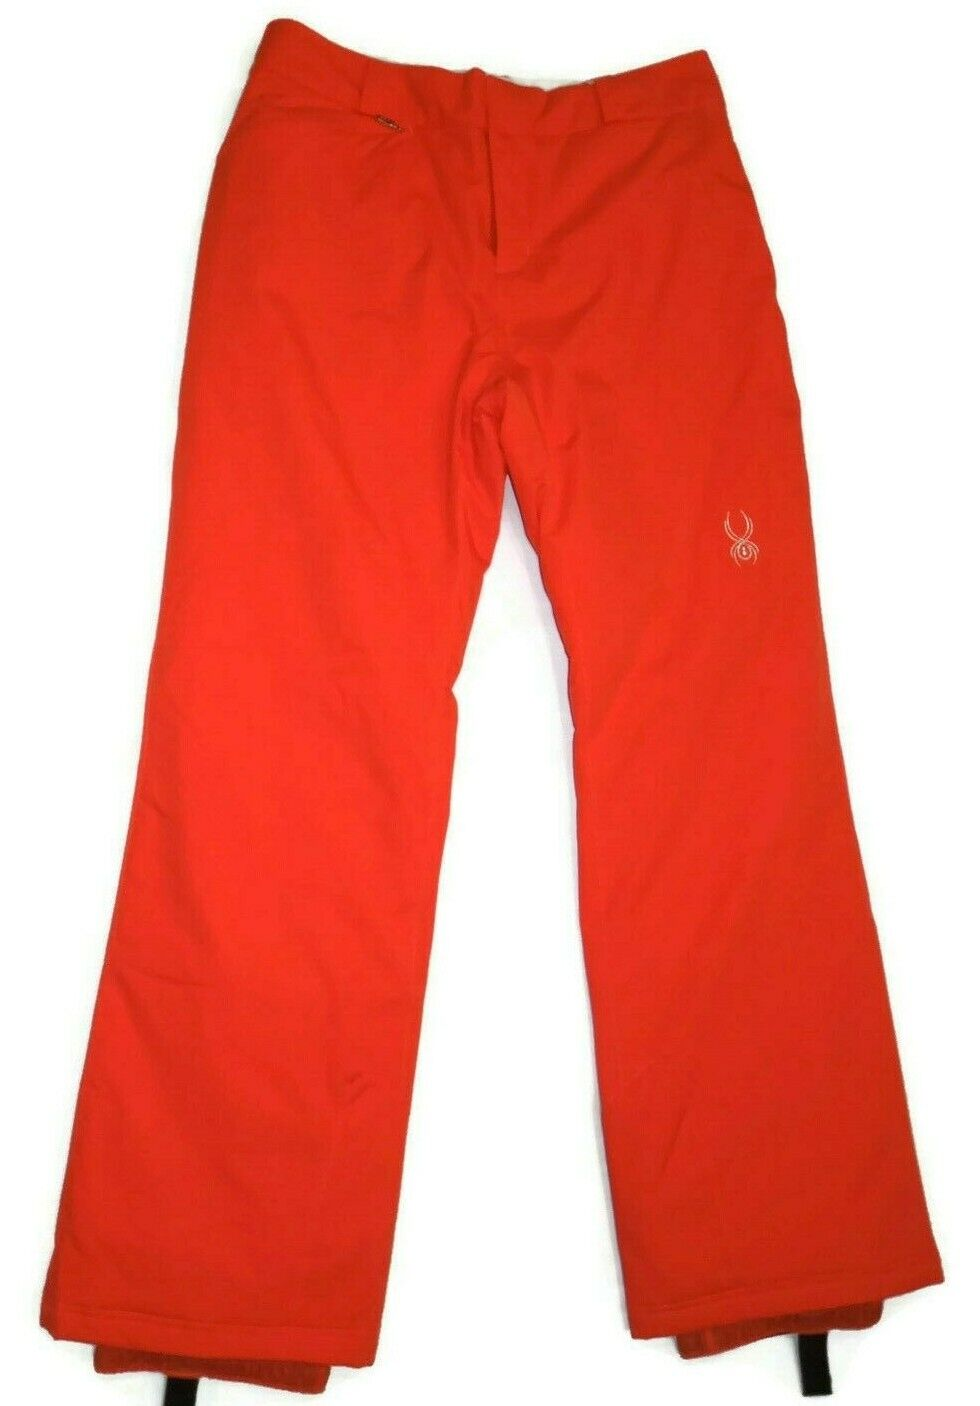 Spyder  women's Sizzle orange Ski snow Pants Size 12 retail  170  welcome to order